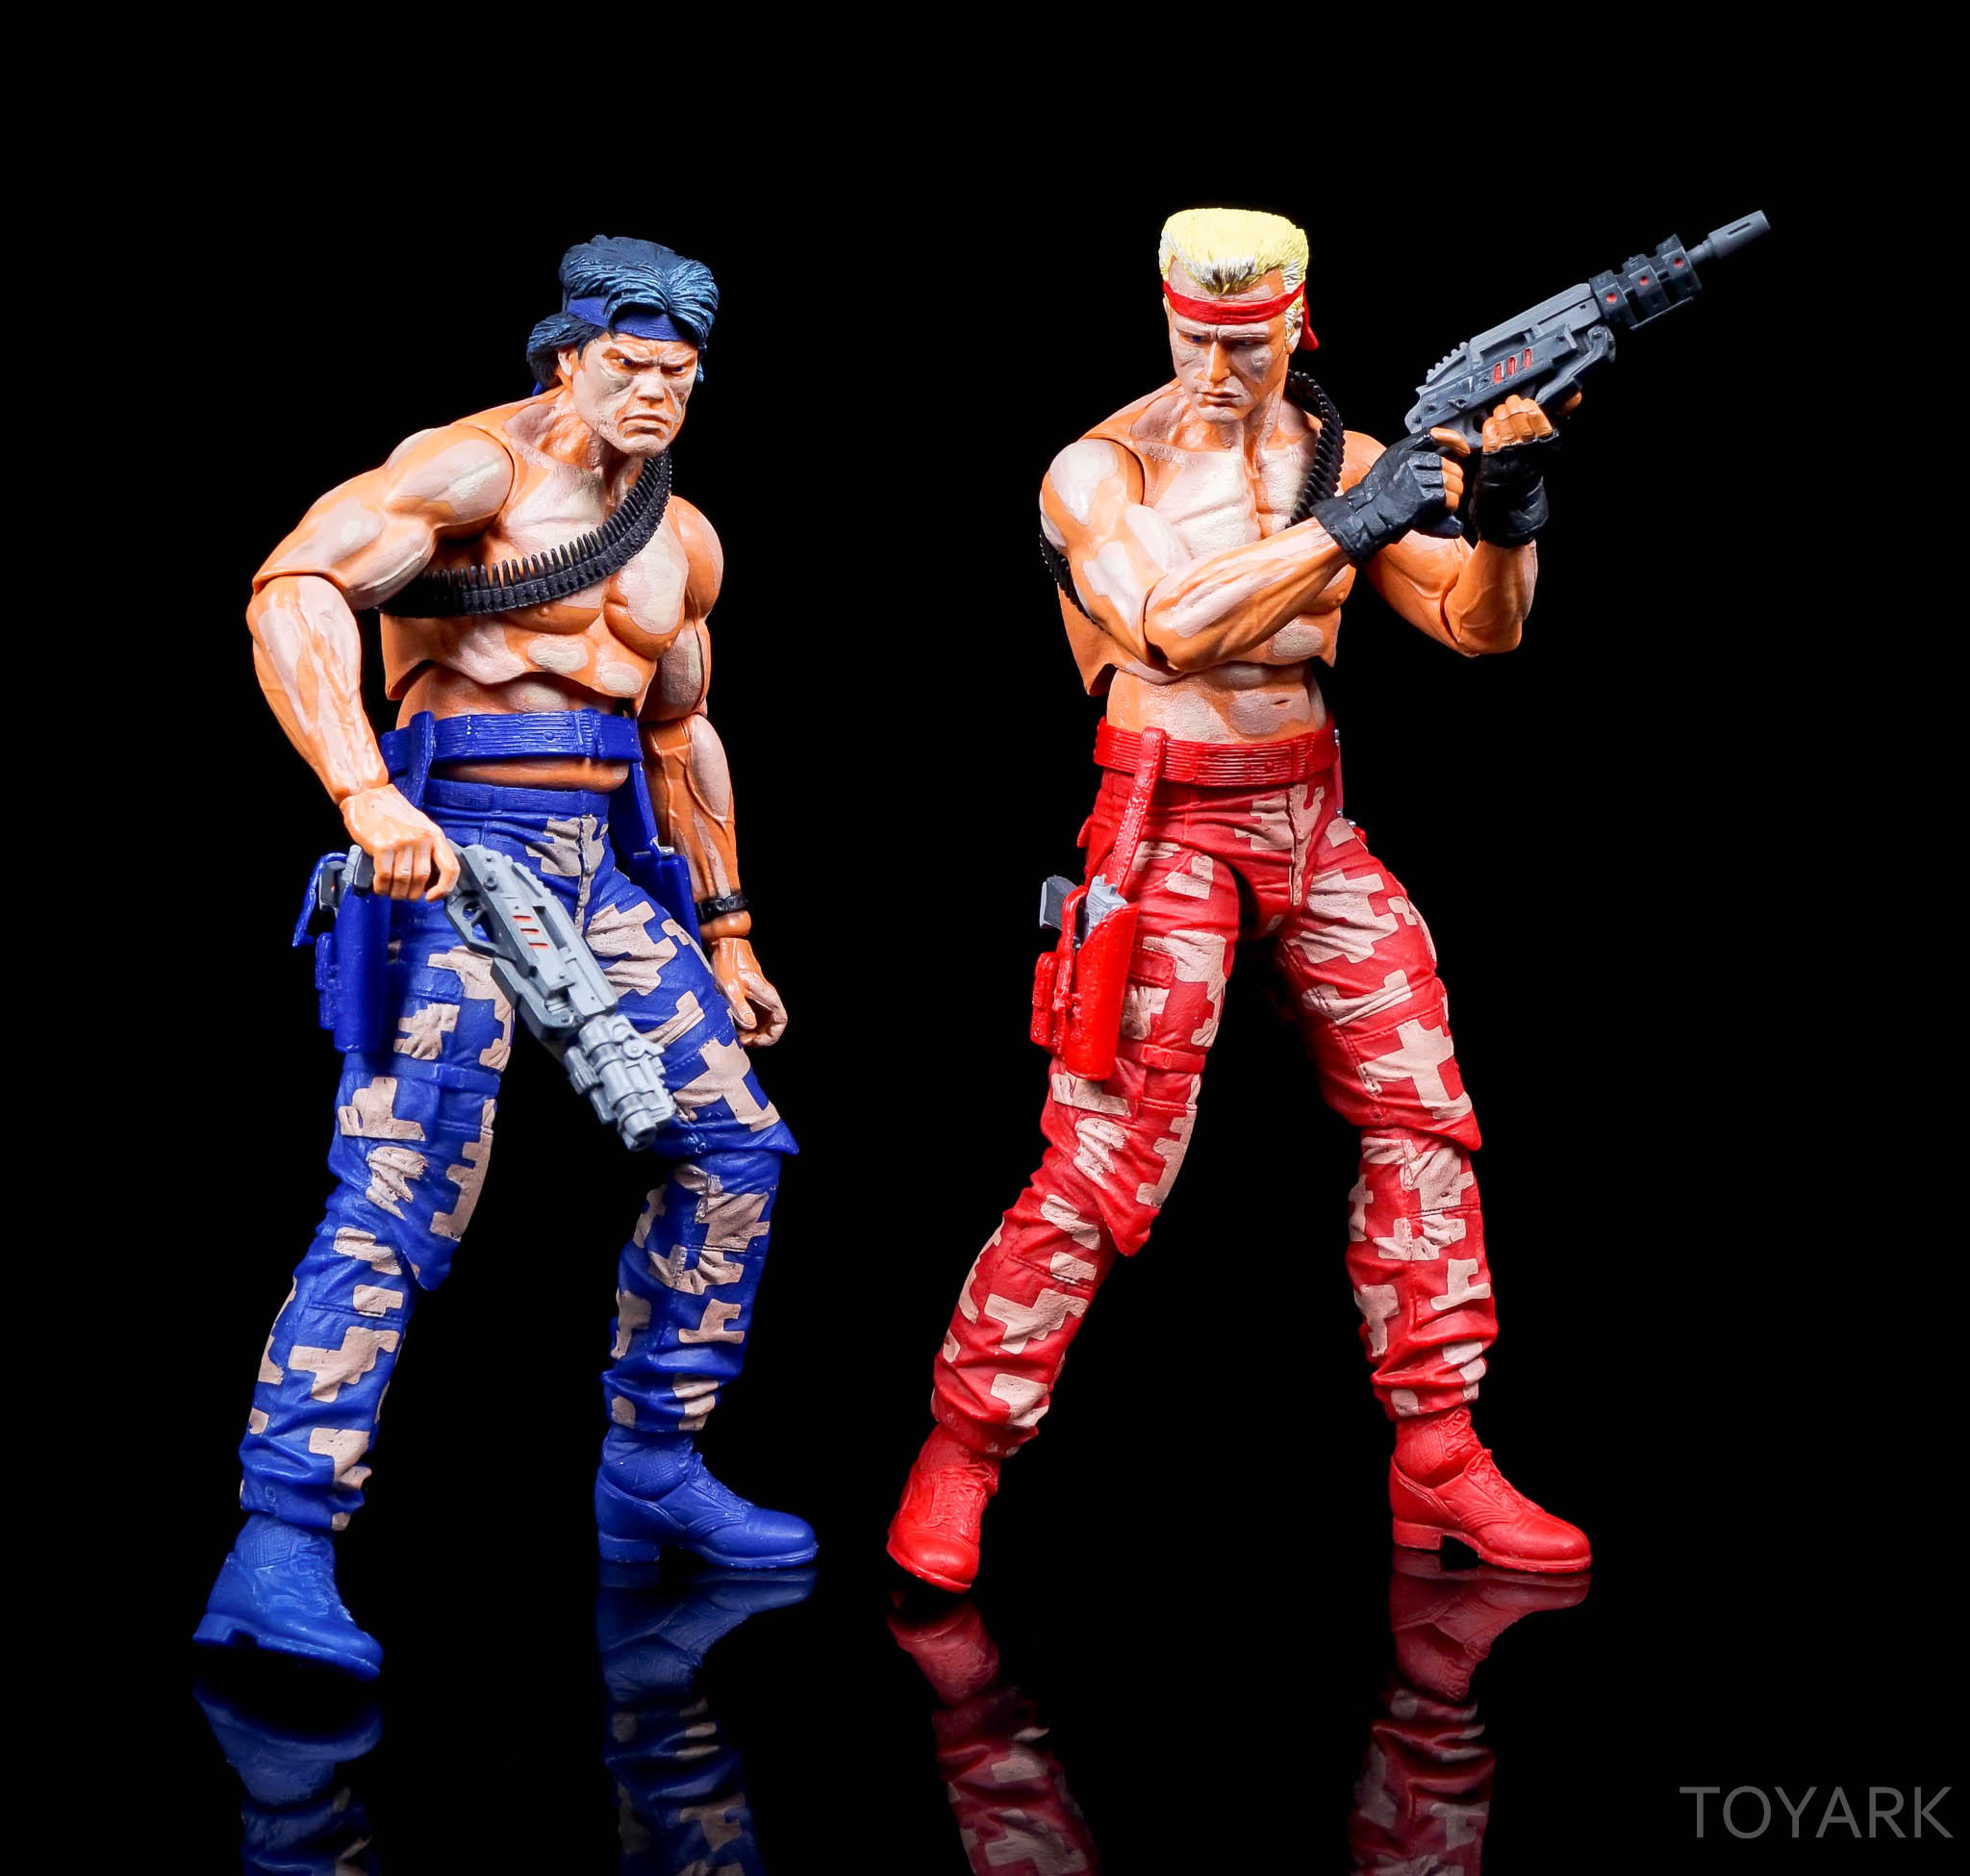 http://news.toyark.com/wp-content/uploads/sites/4/2016/08/NECA-Contra-VGA-031.jpg